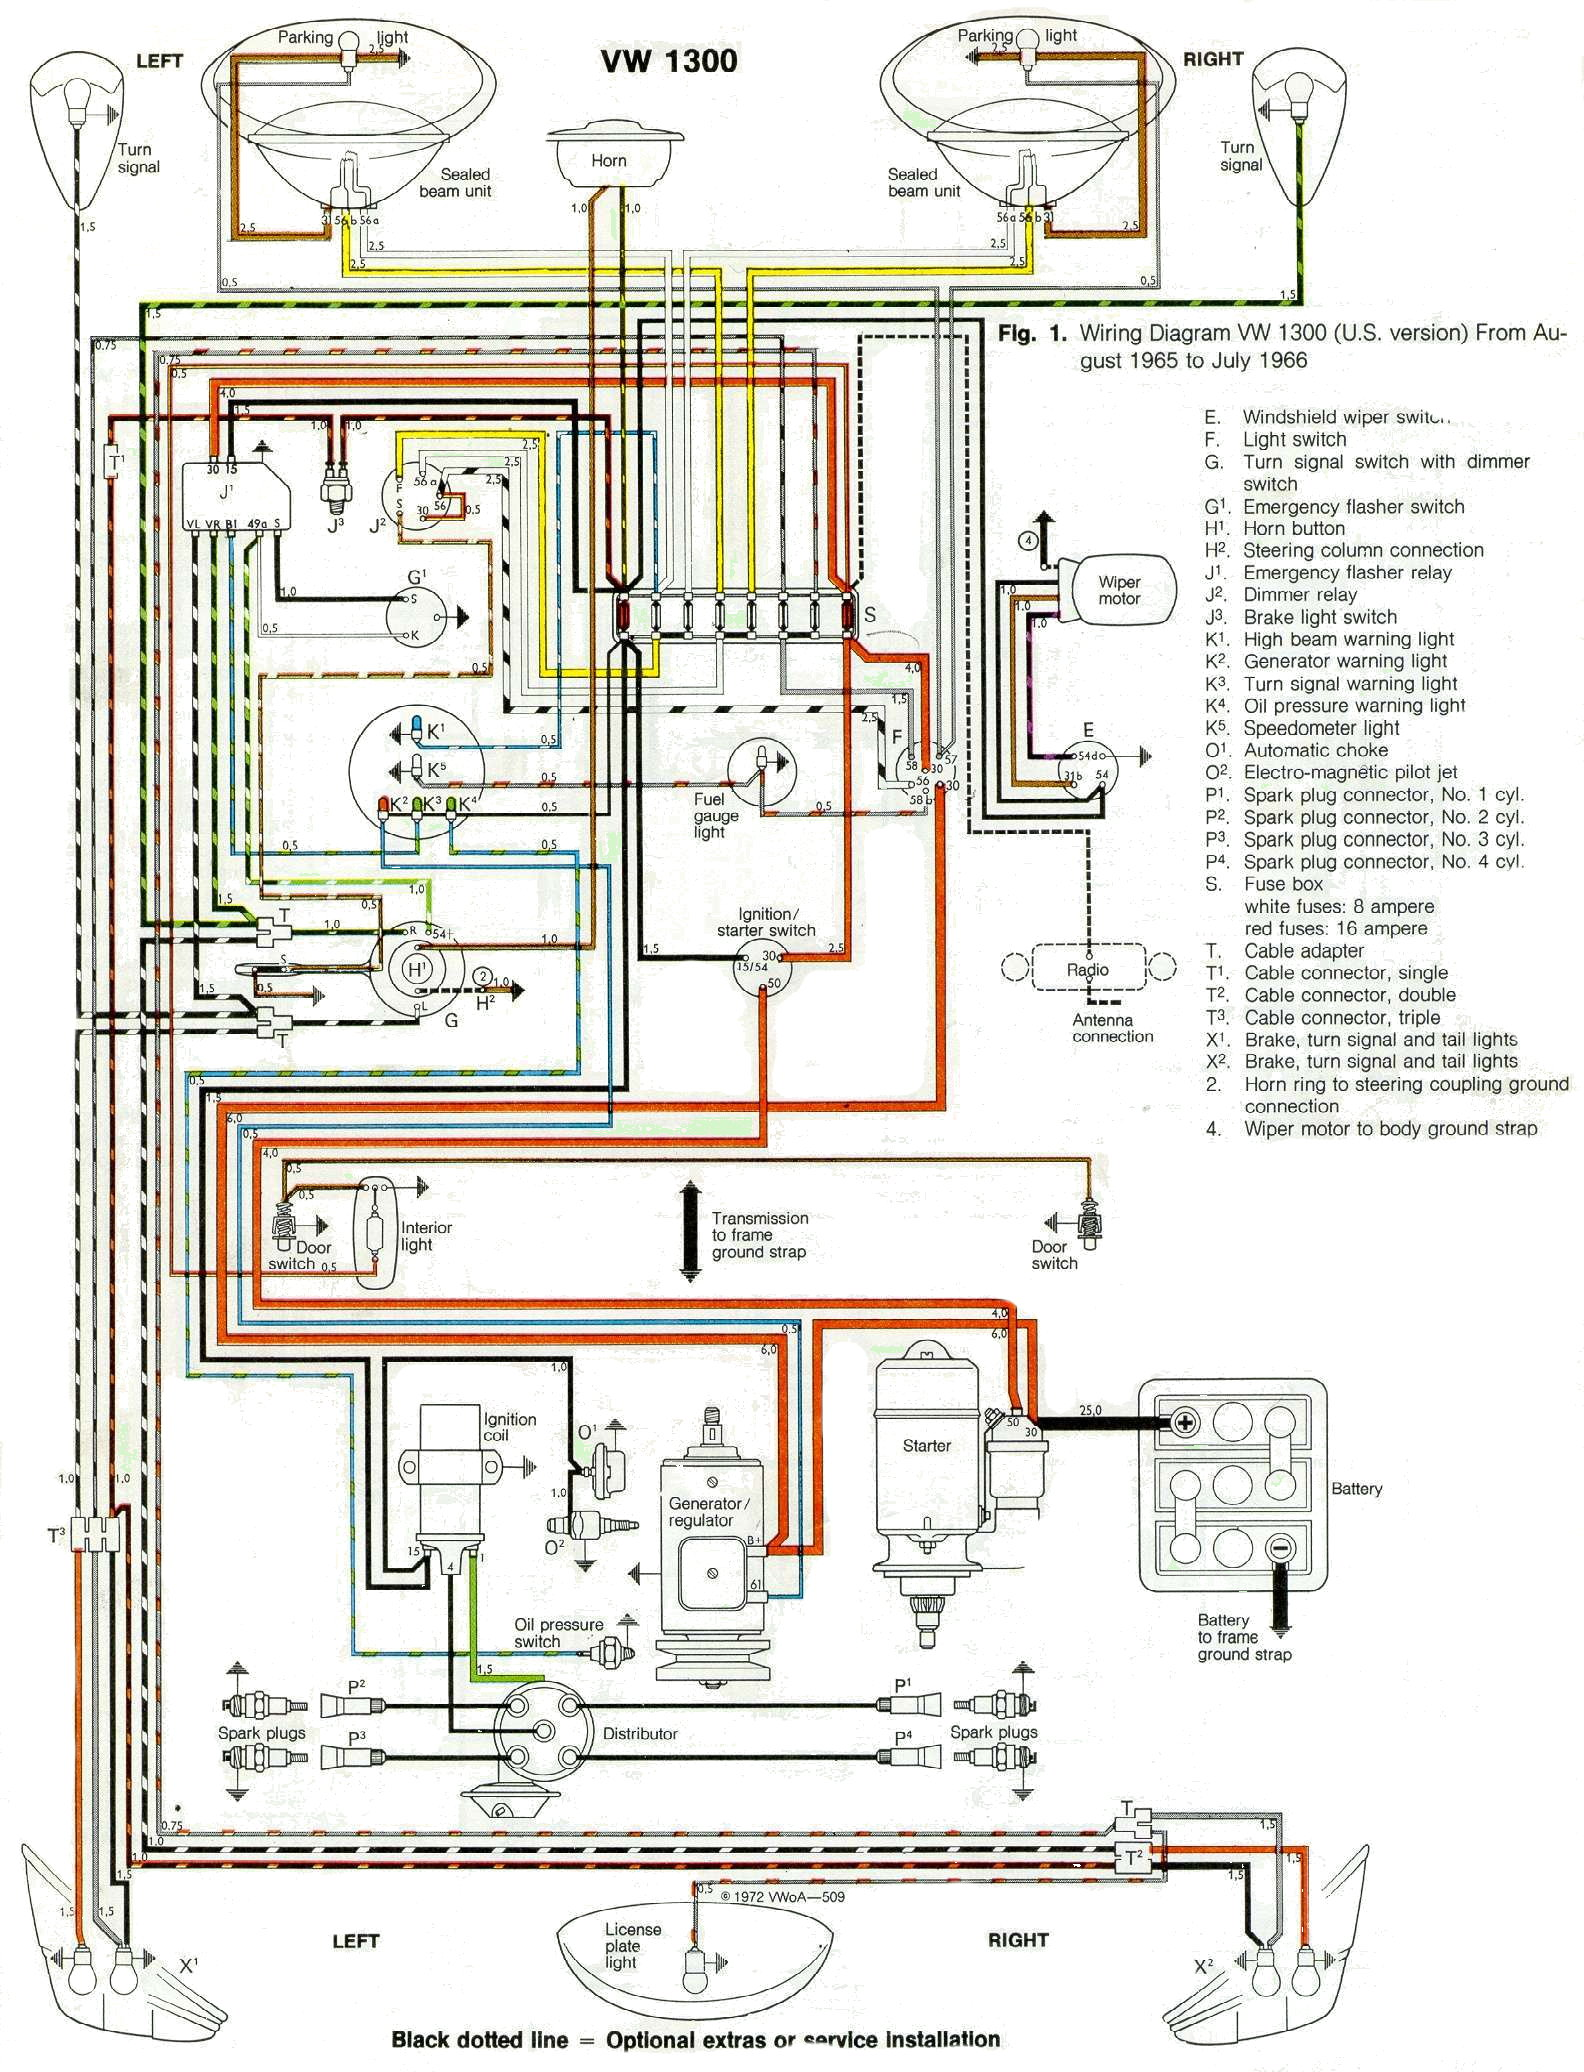 vw beetle wiring diagram vw wiring diagrams online vw beetle wiring diagram